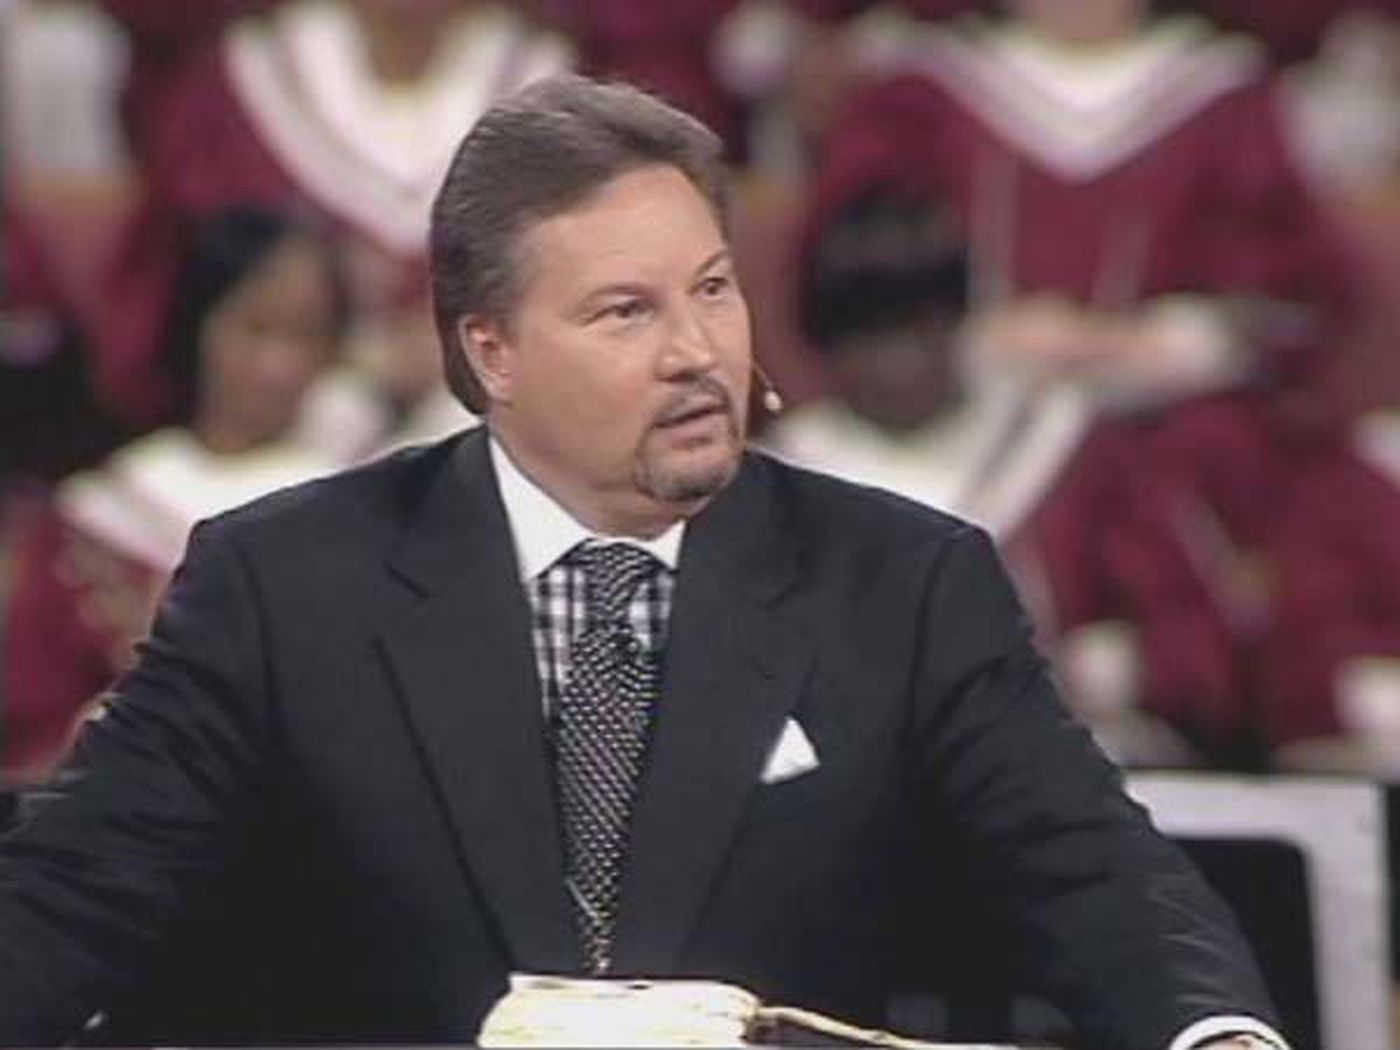 Donnie Swaggart: Carolina Theatre Of Greensboro – Billy Knight